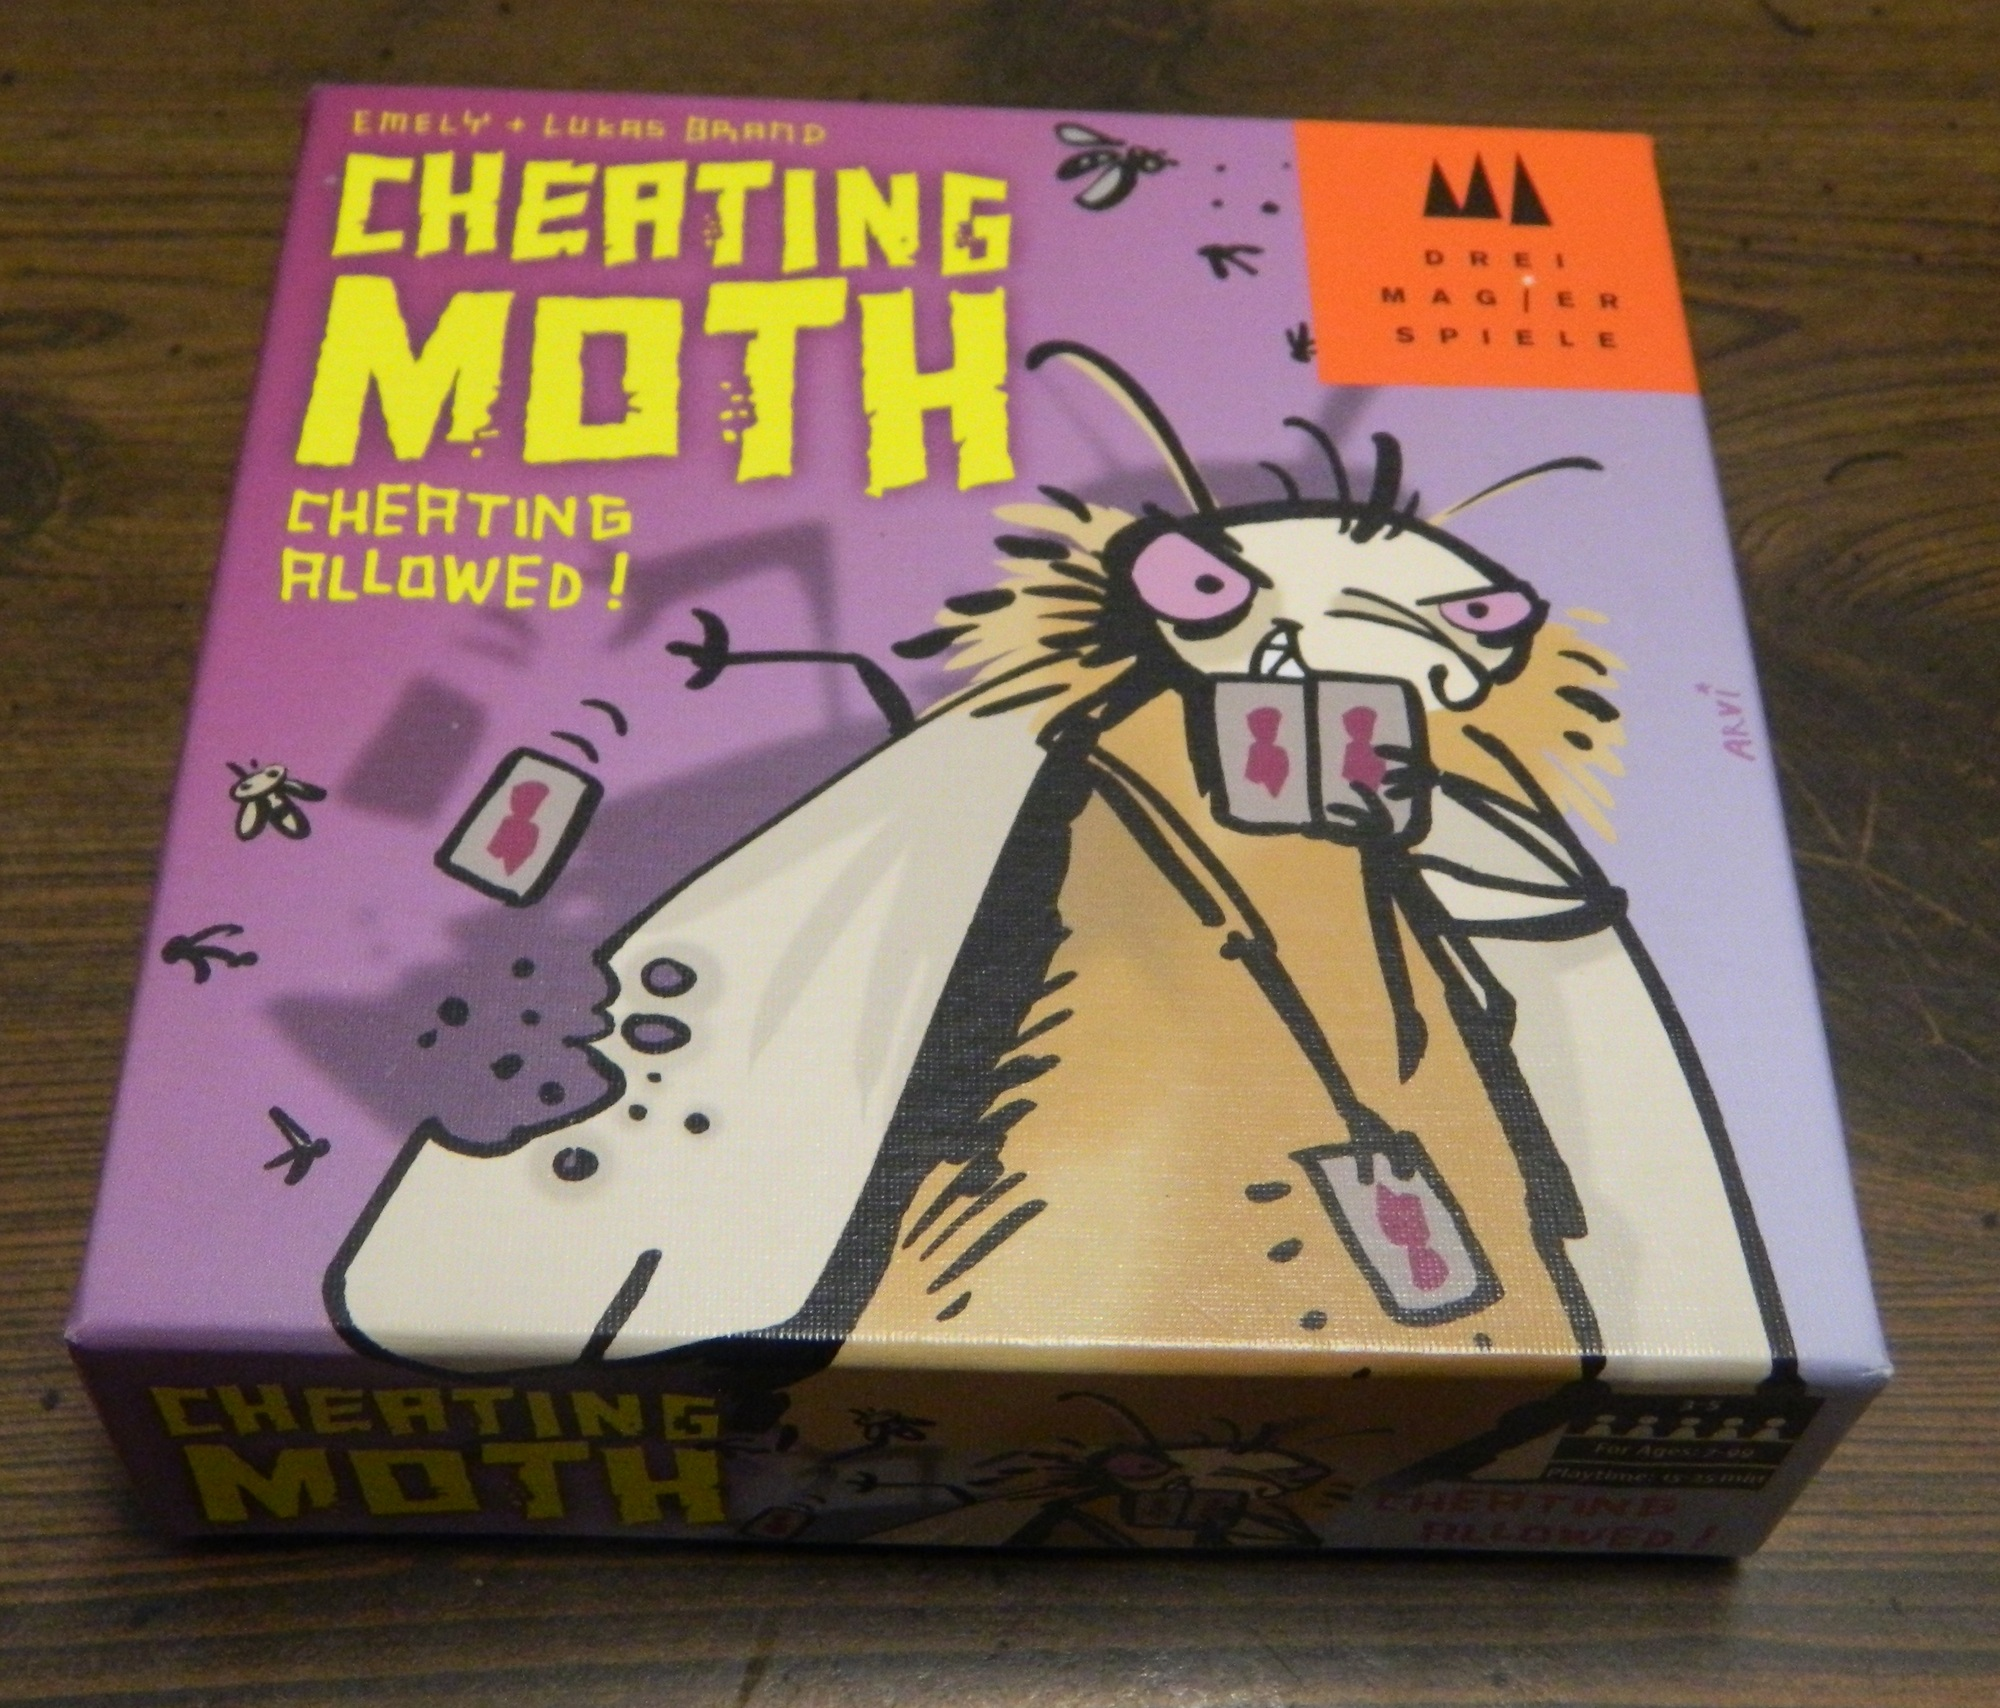 Box for Cheating Moth